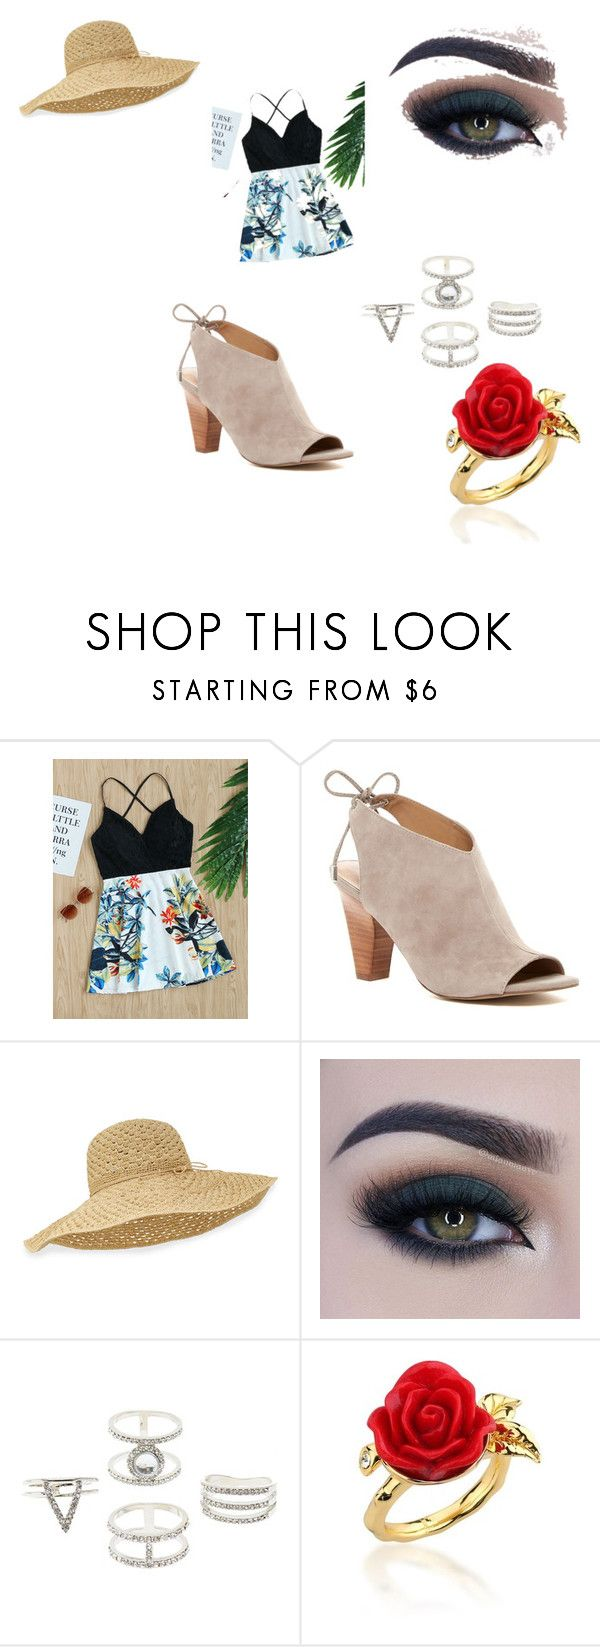 """Go to Cheesecake factory"" by kyladoodle on Polyvore featuring Franco Sarto, Helen Kaminski, Too Faced Cosmetics, Charlotte Russe and Disney Couture"